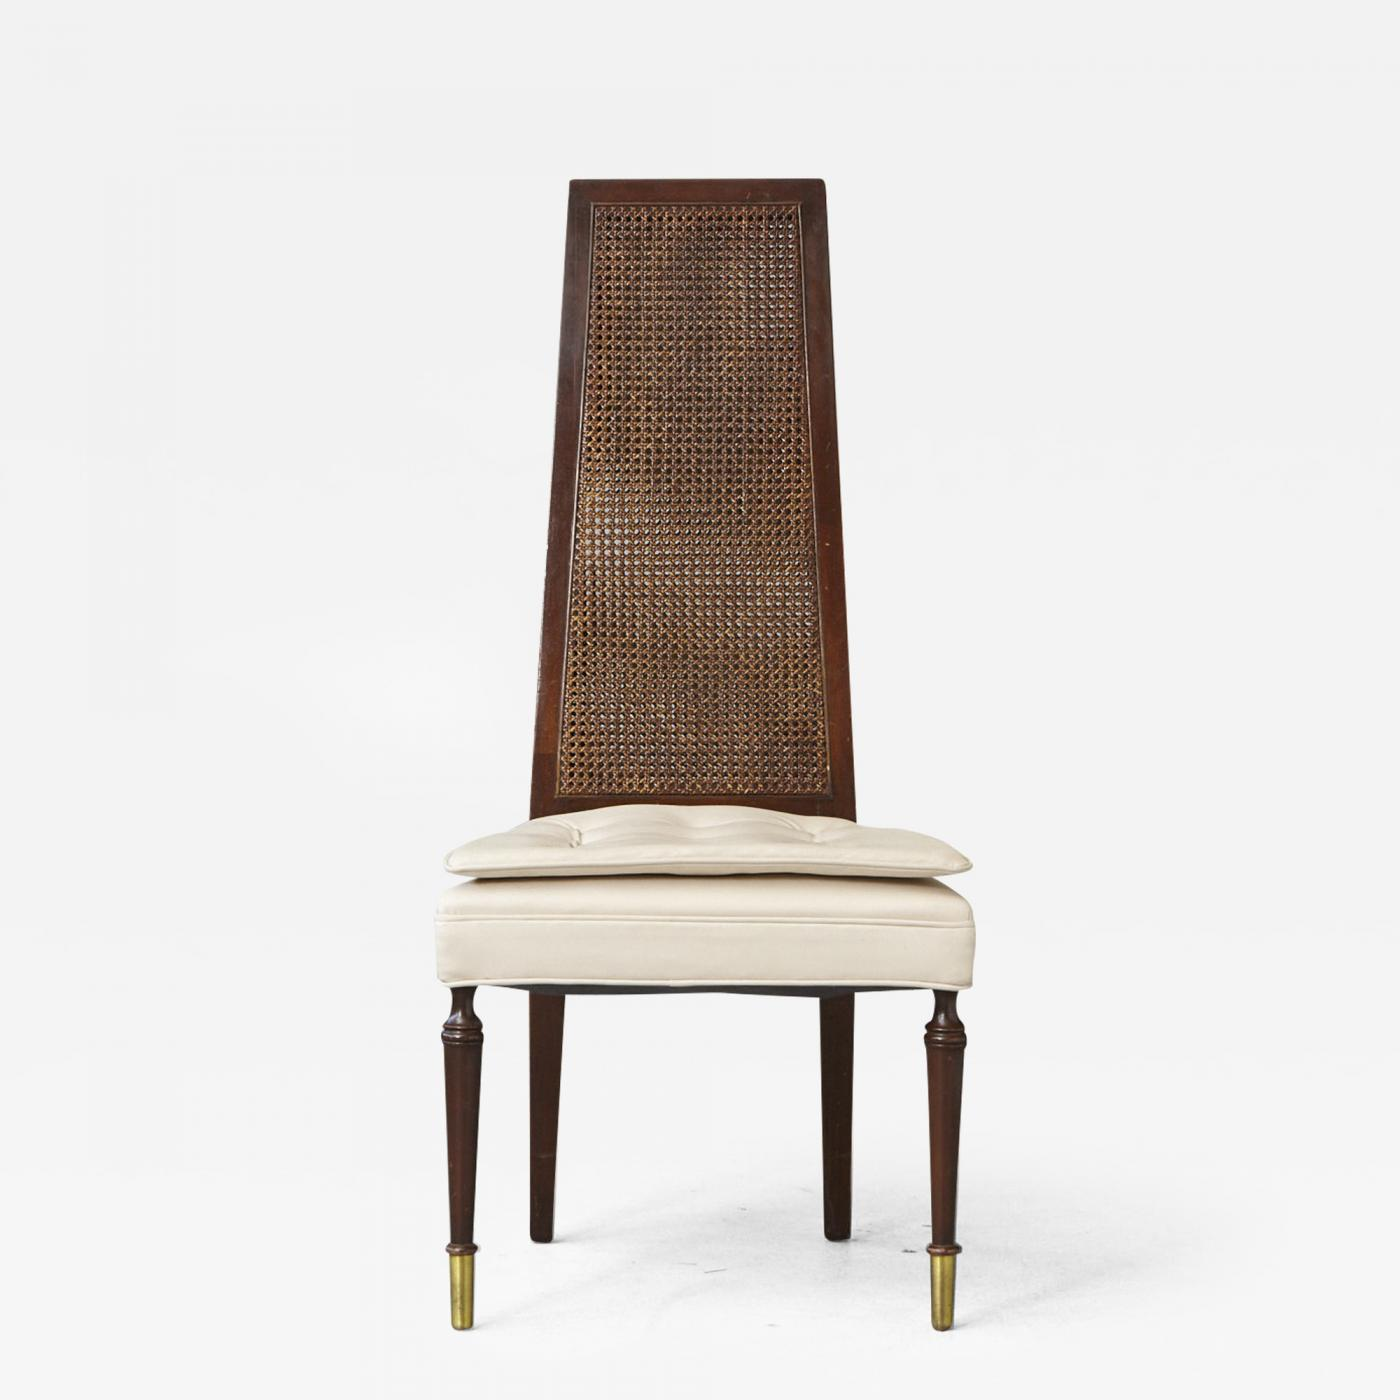 Desk Seat High Back Desk Chair With Double Sided Rattan Back And Ivory Faux Leather Seat